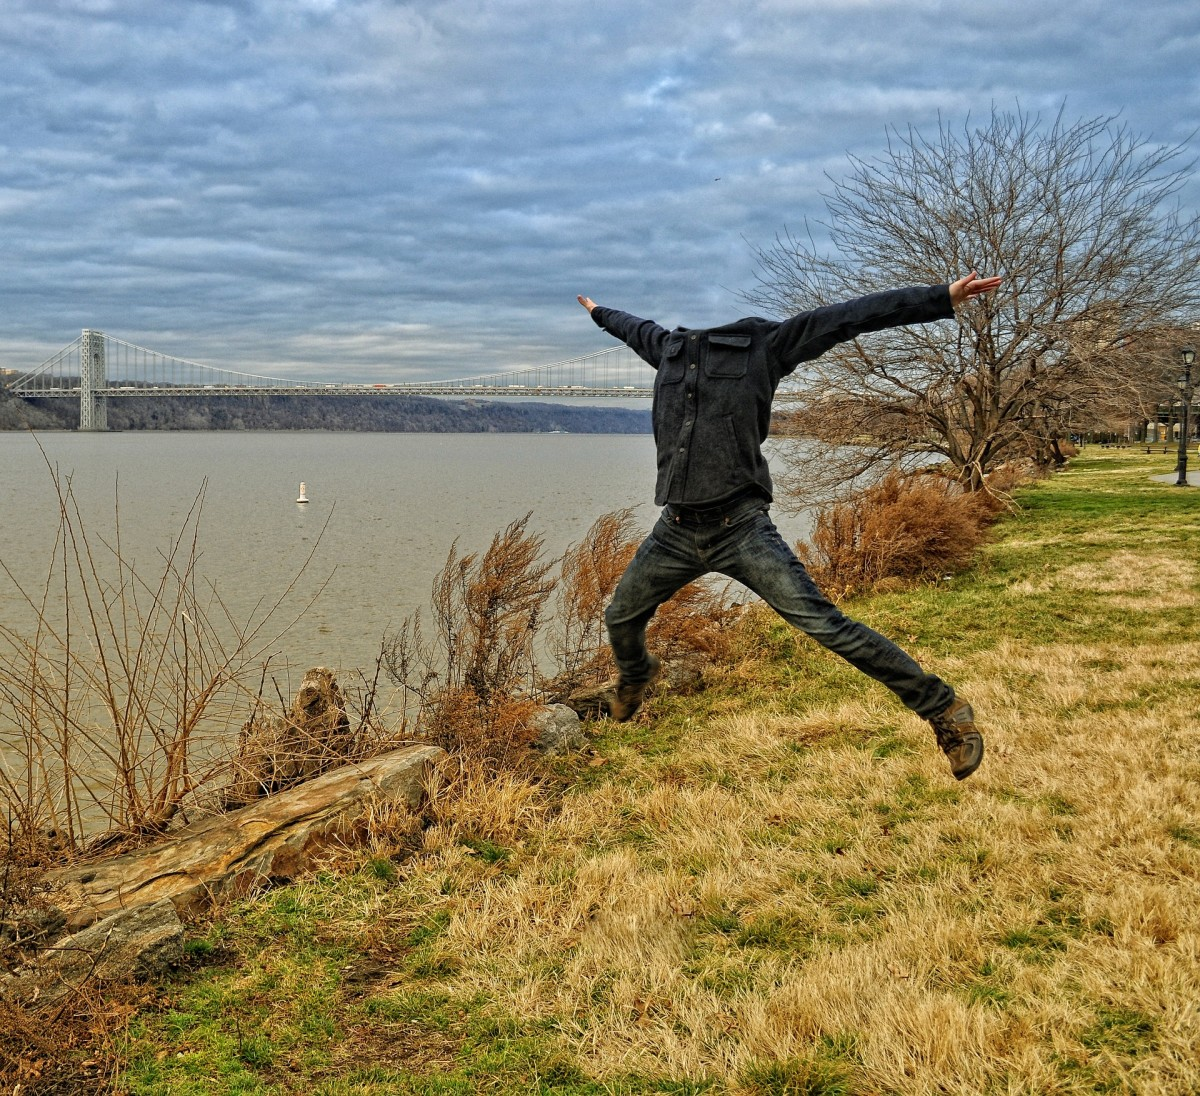 A headless man dressed in everyday clothing jumps about in an open field.